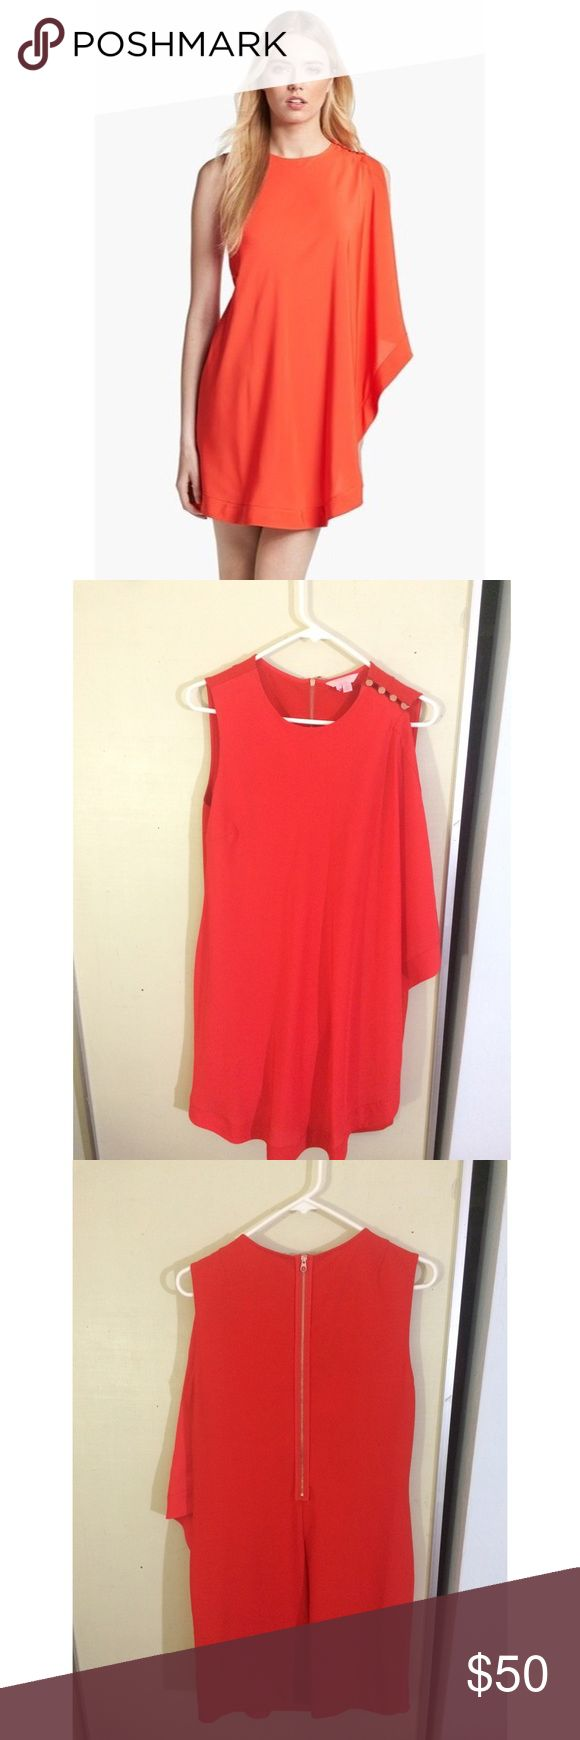 Ted Baker Red Dress Stunning simple and elegant red dress by Ted Baker! Worn once and then has remained untouched in the closet! Because the designer's sizing is unique we've also included a copy of the sizing guide. Ted Baker London Dresses